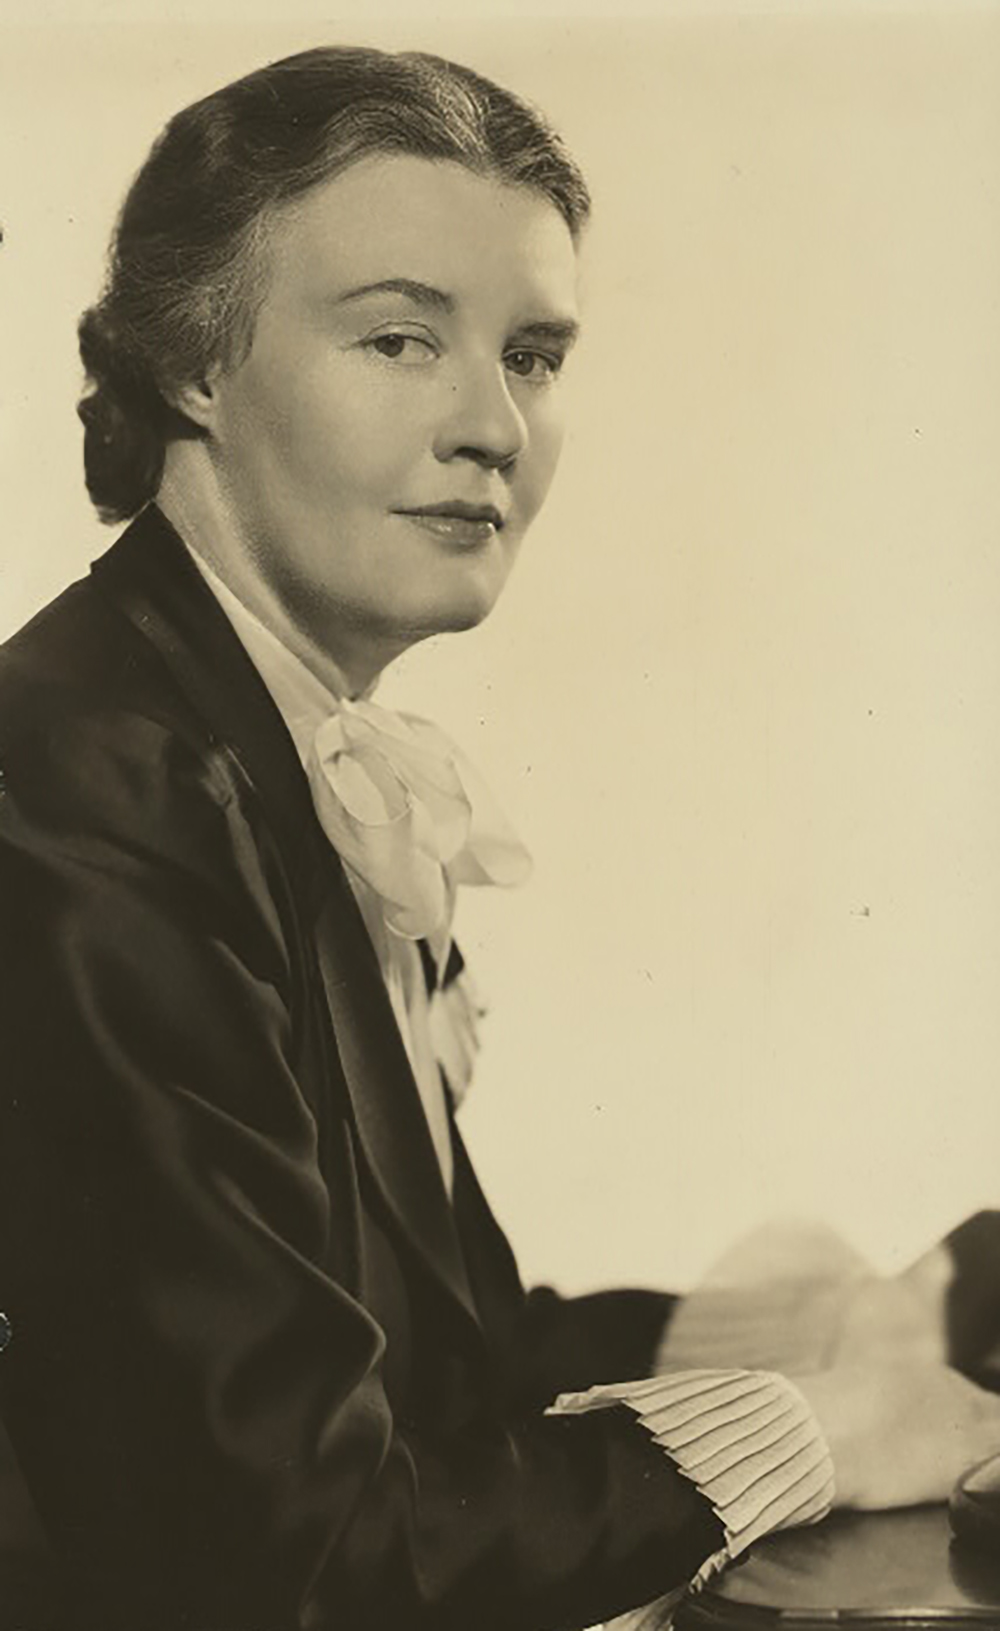 Dorothy Thompson. New York Public Library, Billy Rose Theatre Collection photograph file.